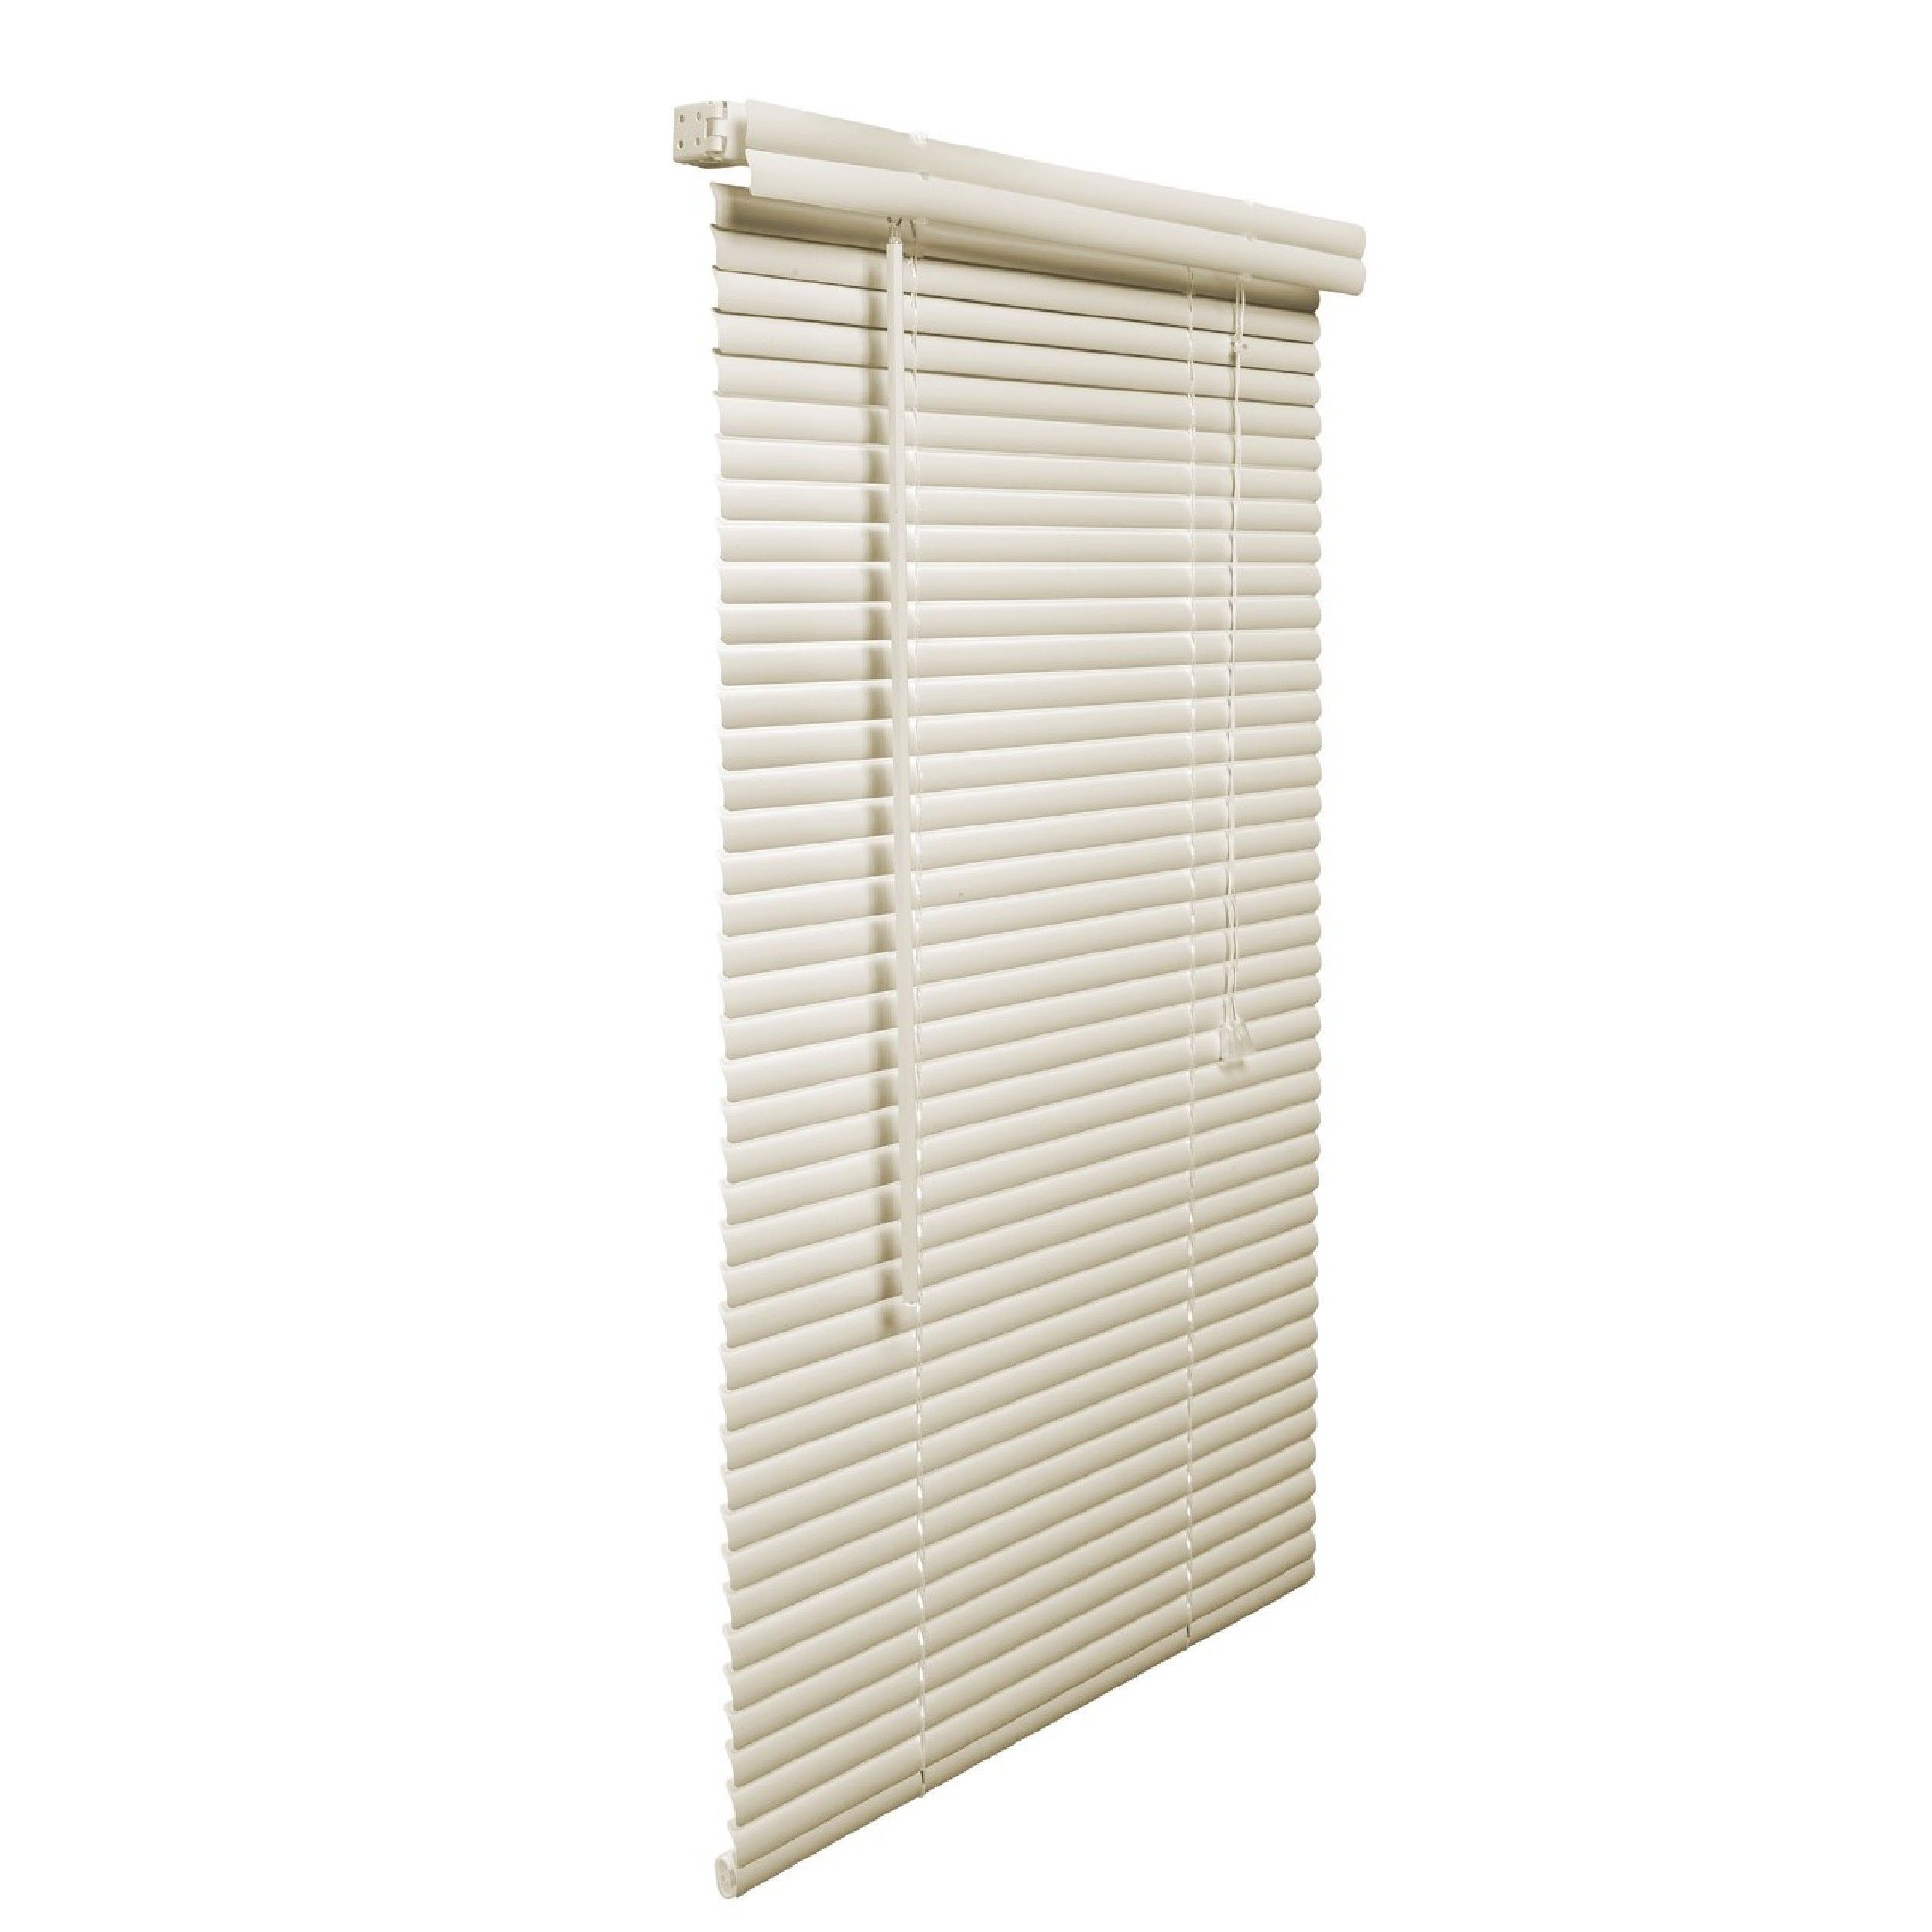 Lotus Vinyl Plus Alabaster 1 Inch X 22 30 Inch Blinds Alabaster 30 Inches Wide X 48 Inches Long Beige Off White Pv Blinds Vinyl Blinds Vinyl Mini Blinds